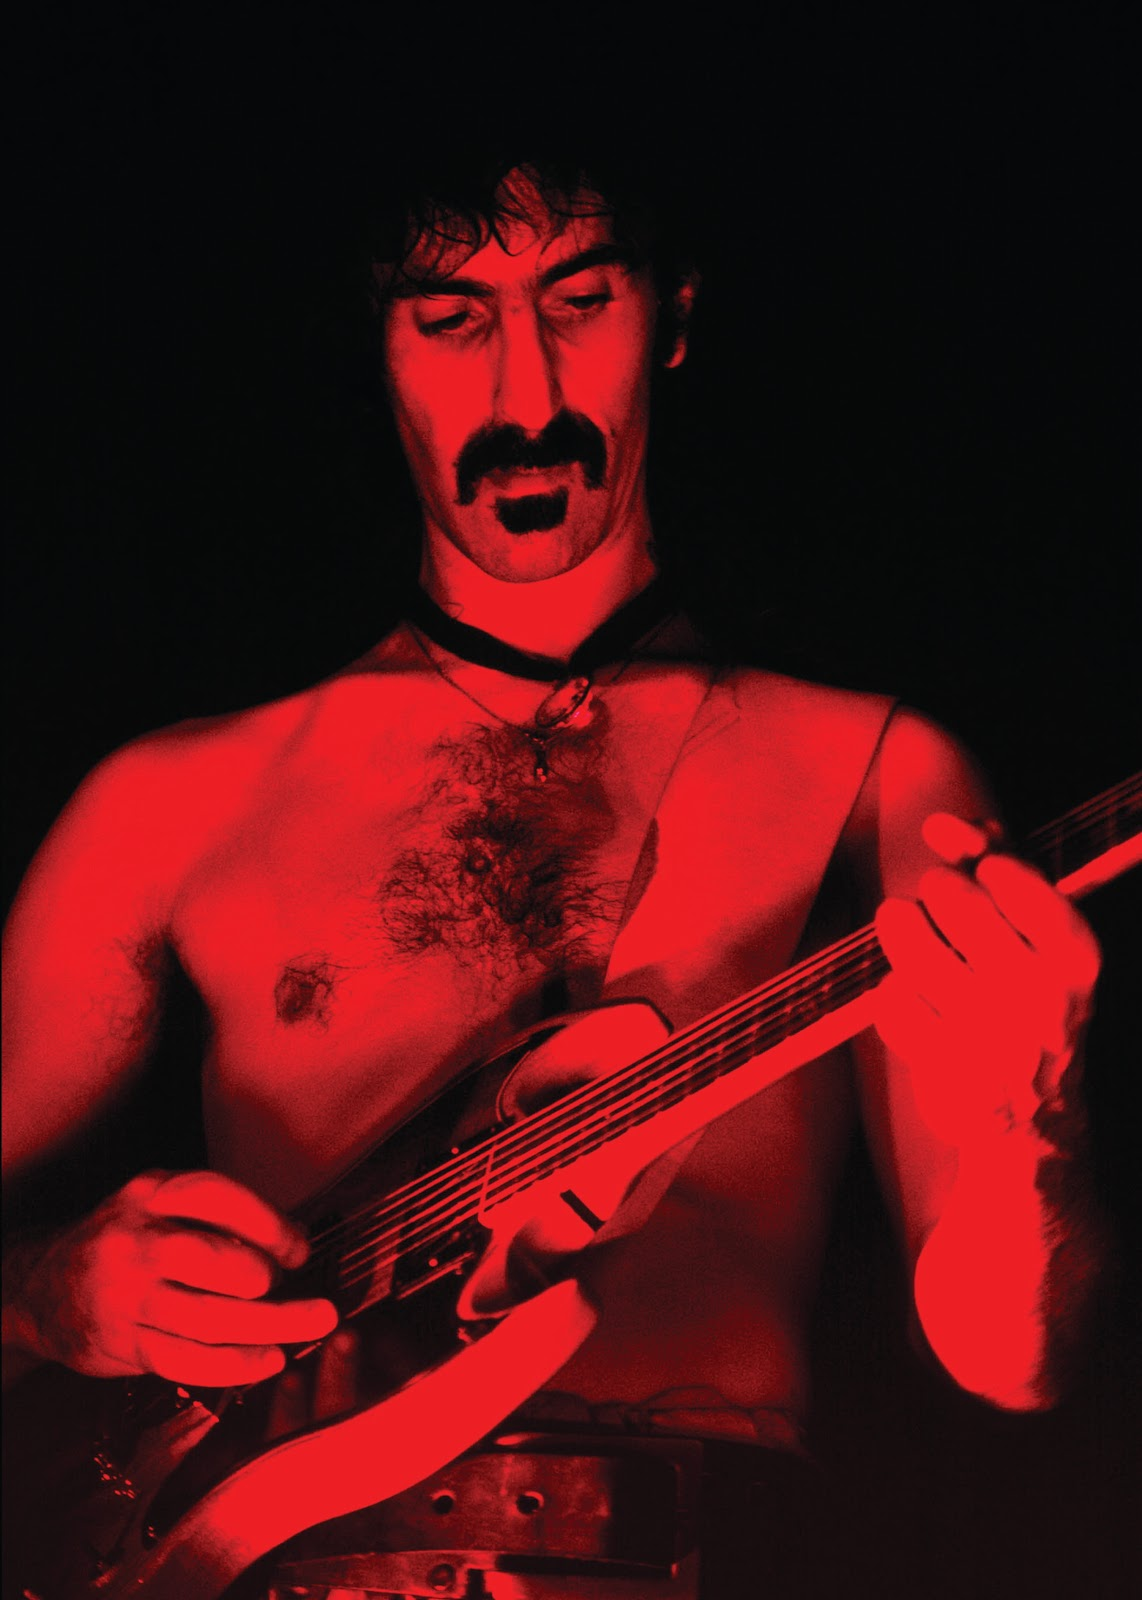 an introduction to the life of frank zappa Unlike most editing & proofreading services, we edit for everything: grammar, spelling, punctuation, idea flow, sentence structure, & more get started now.